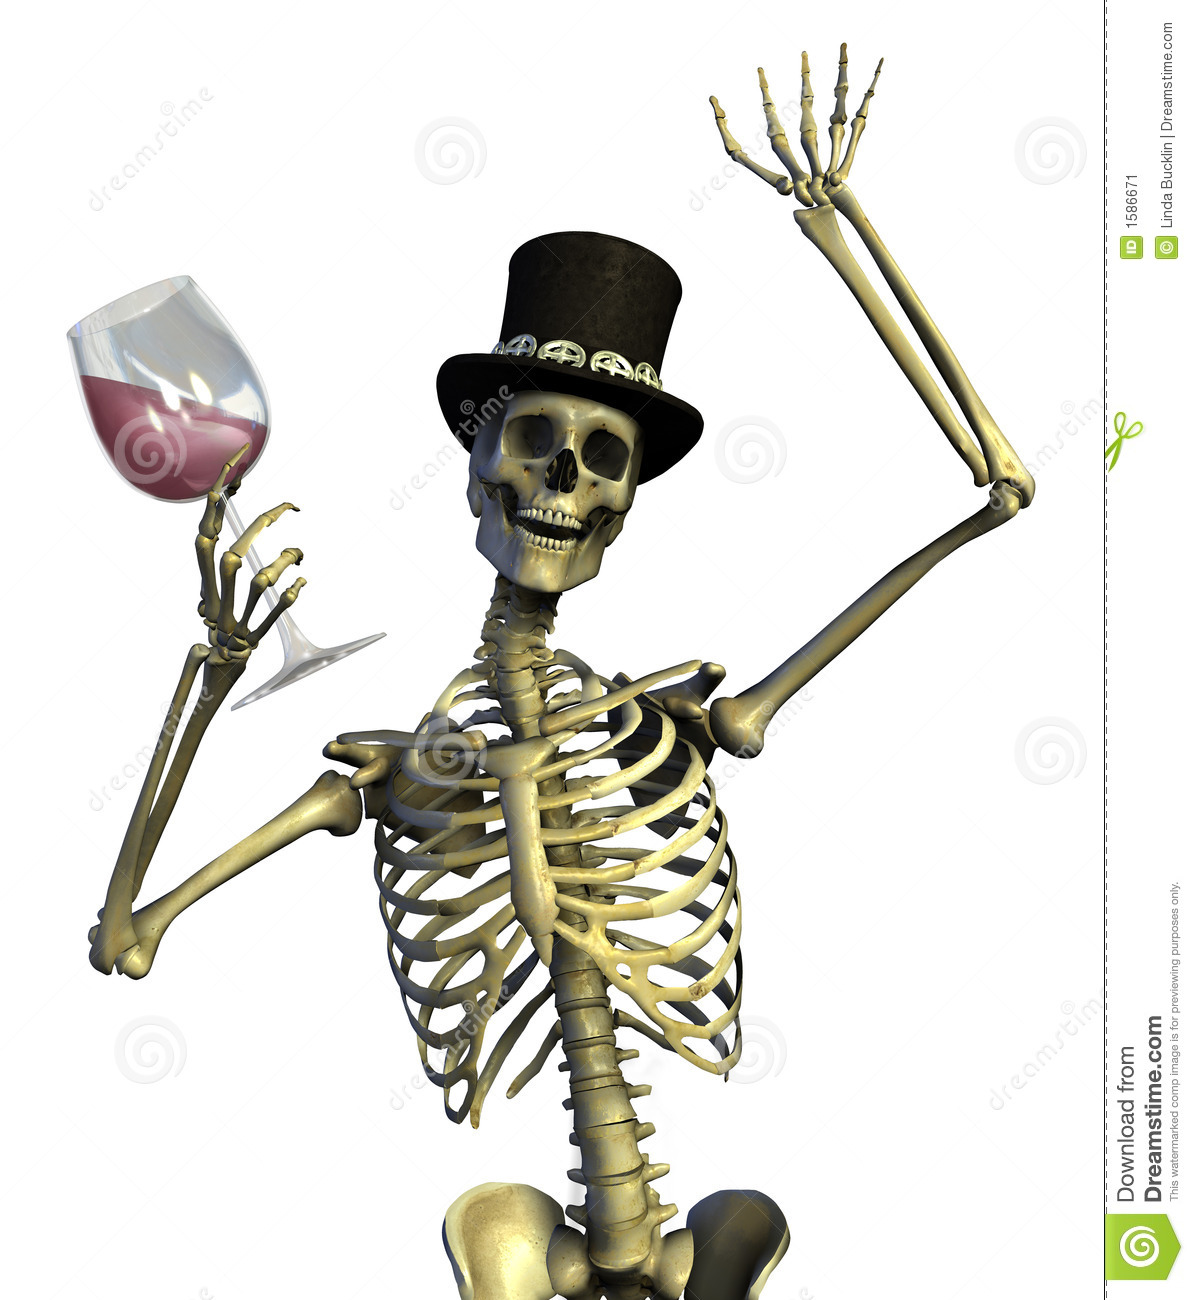 3D render of a fun loving skeleton enjoying a glass of wine.